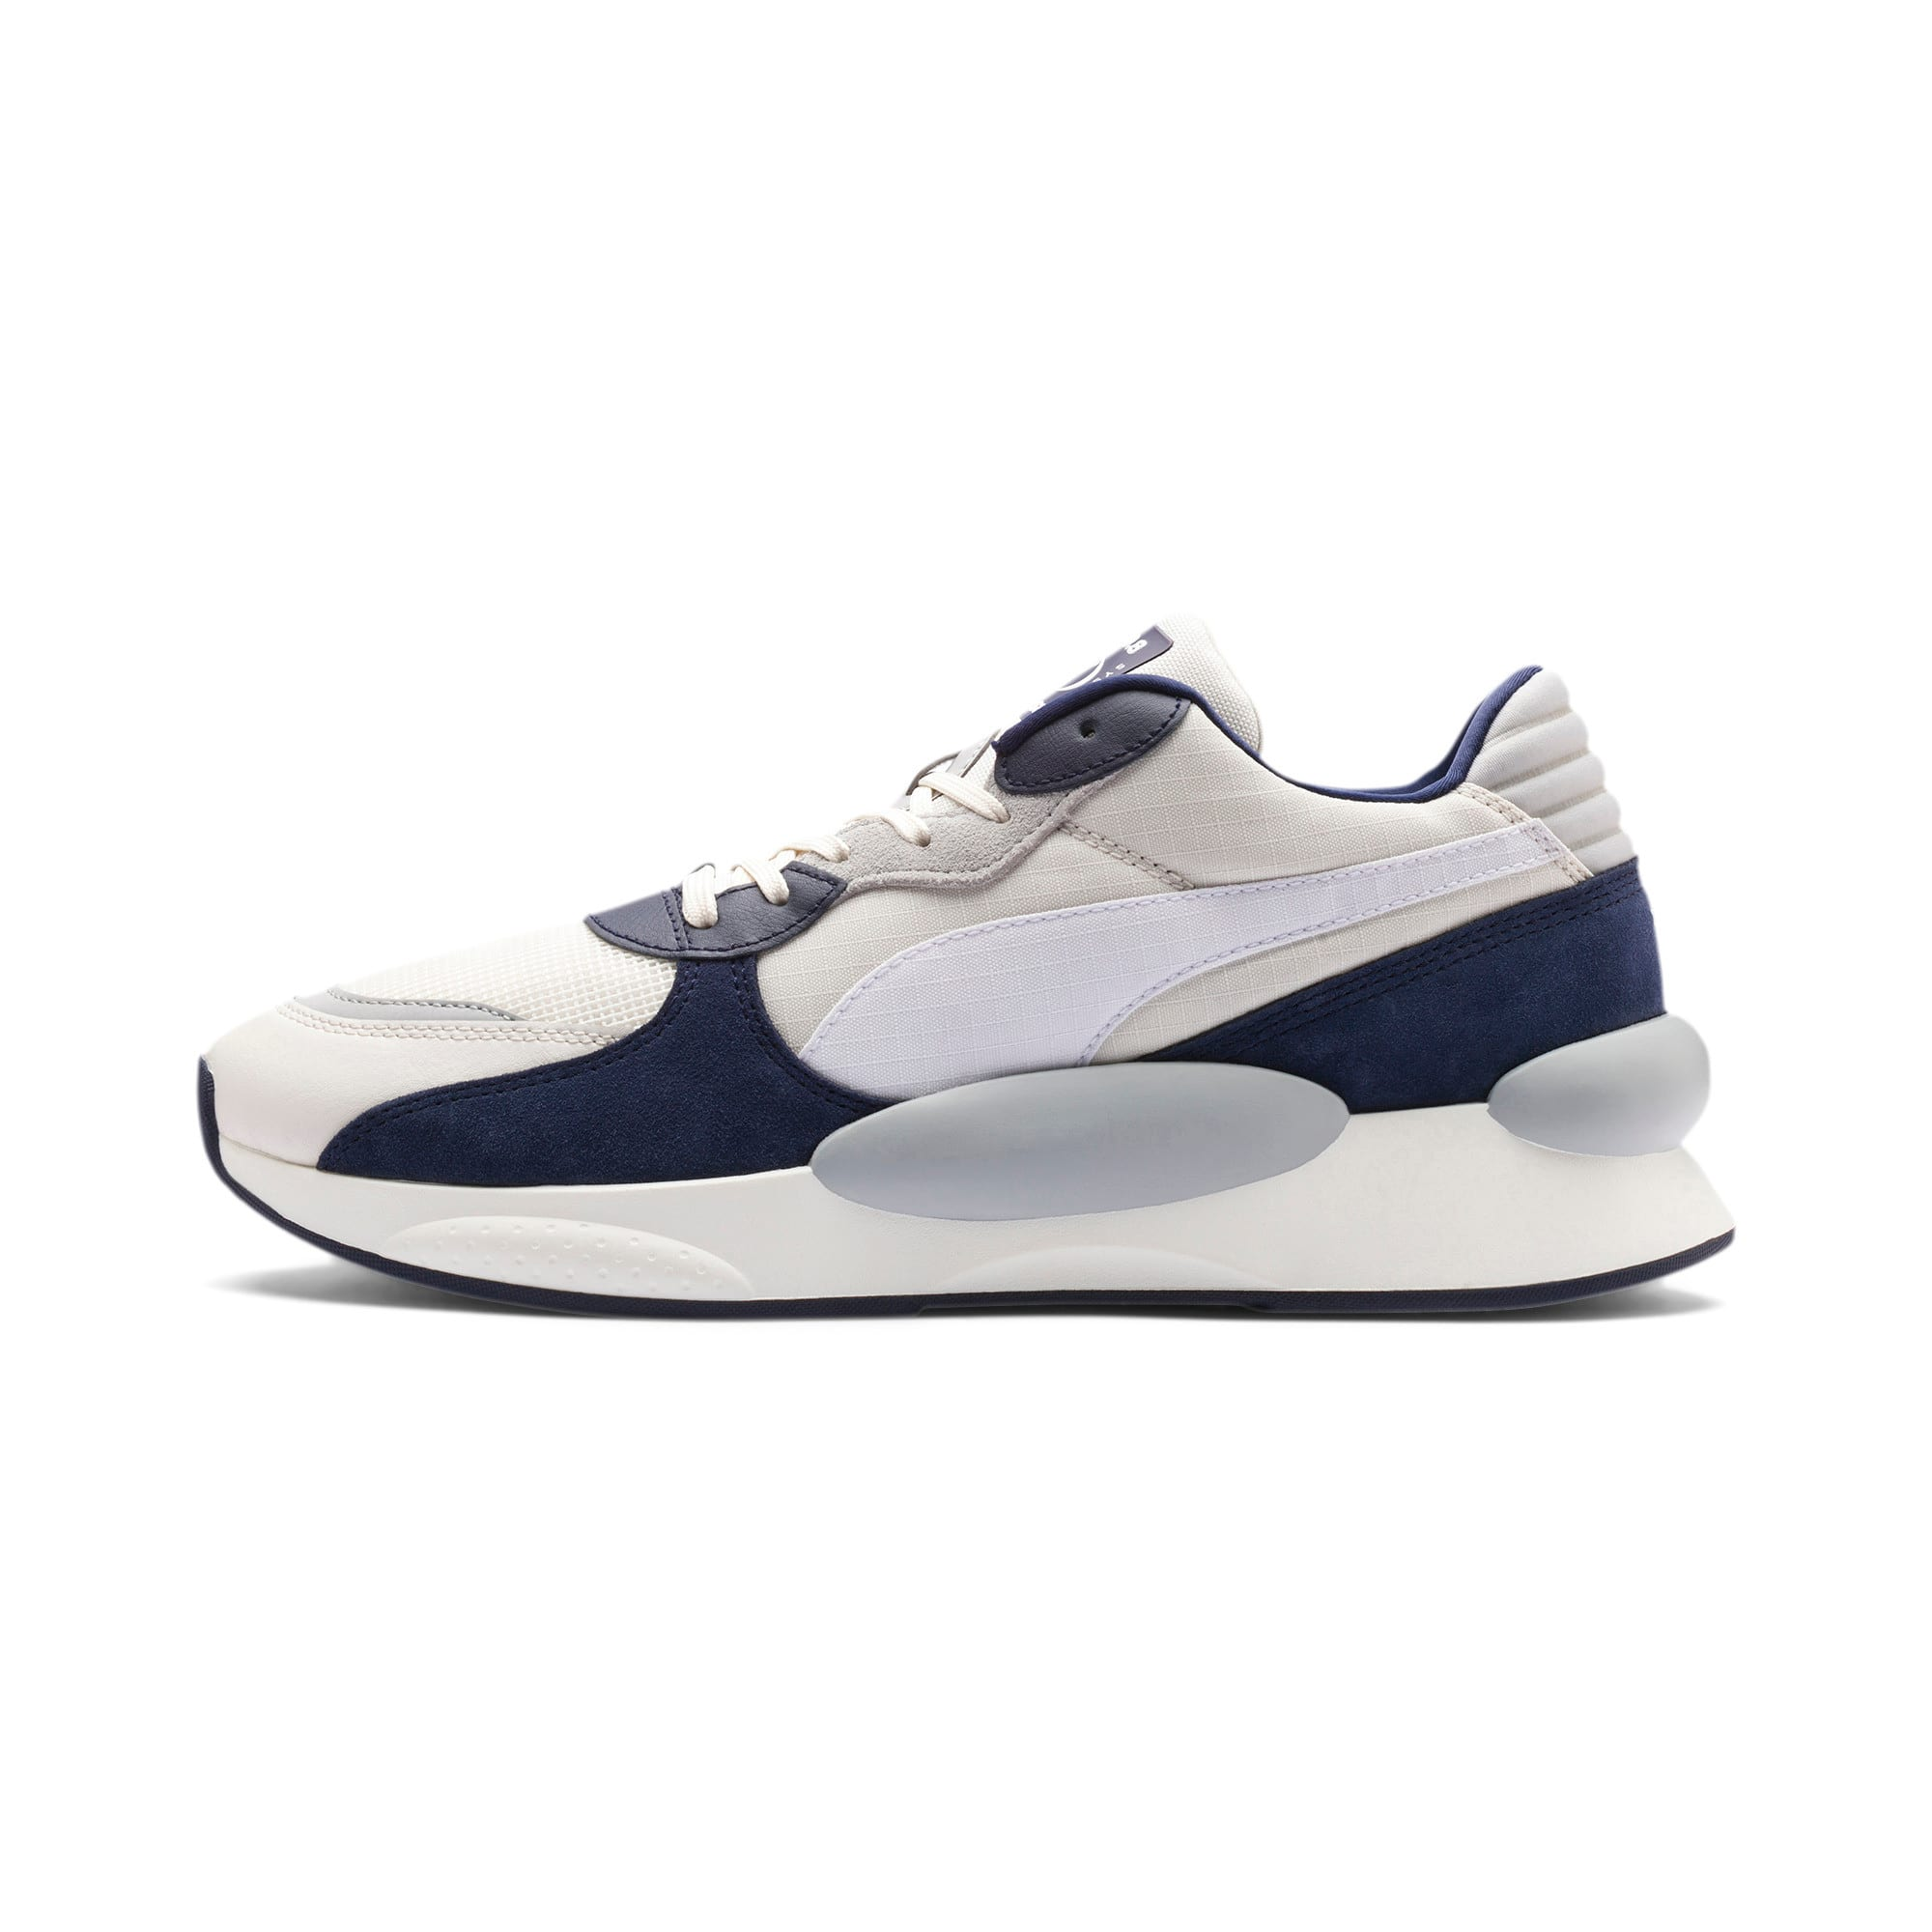 Anteprima 1 di RS 9.8 Space Trainers, Whisper White-Peacoat, medio